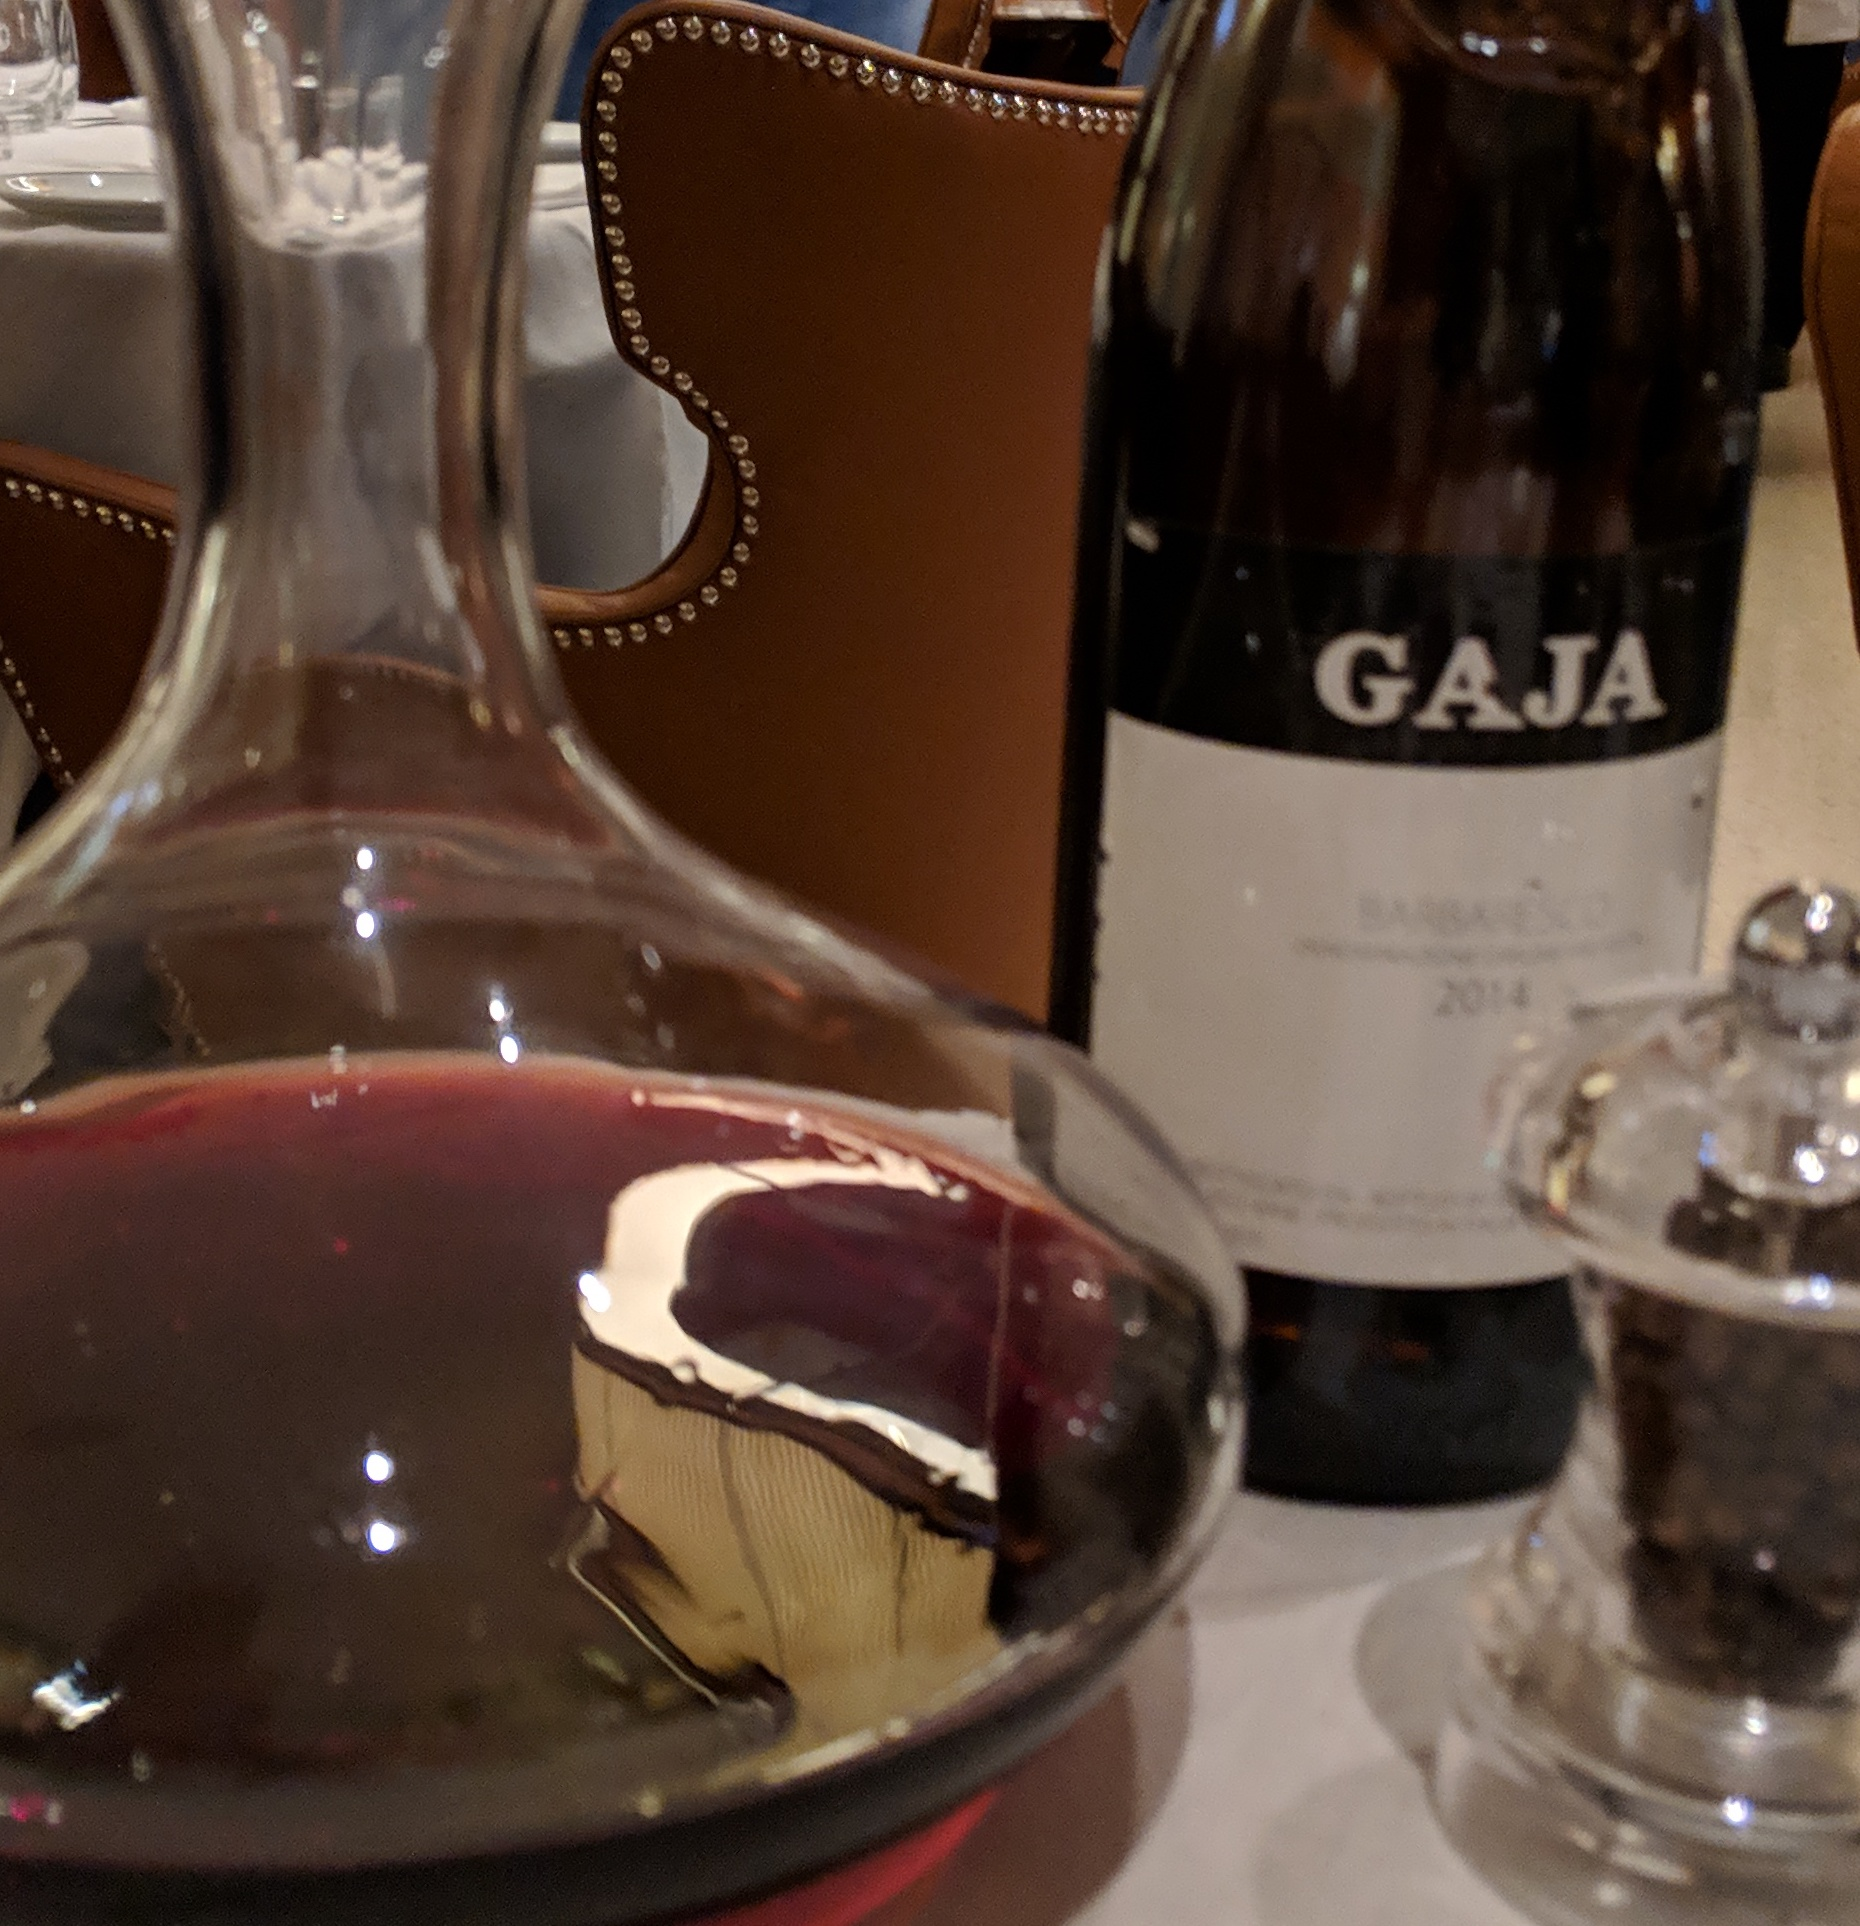 2014 Gaja Barbaresco